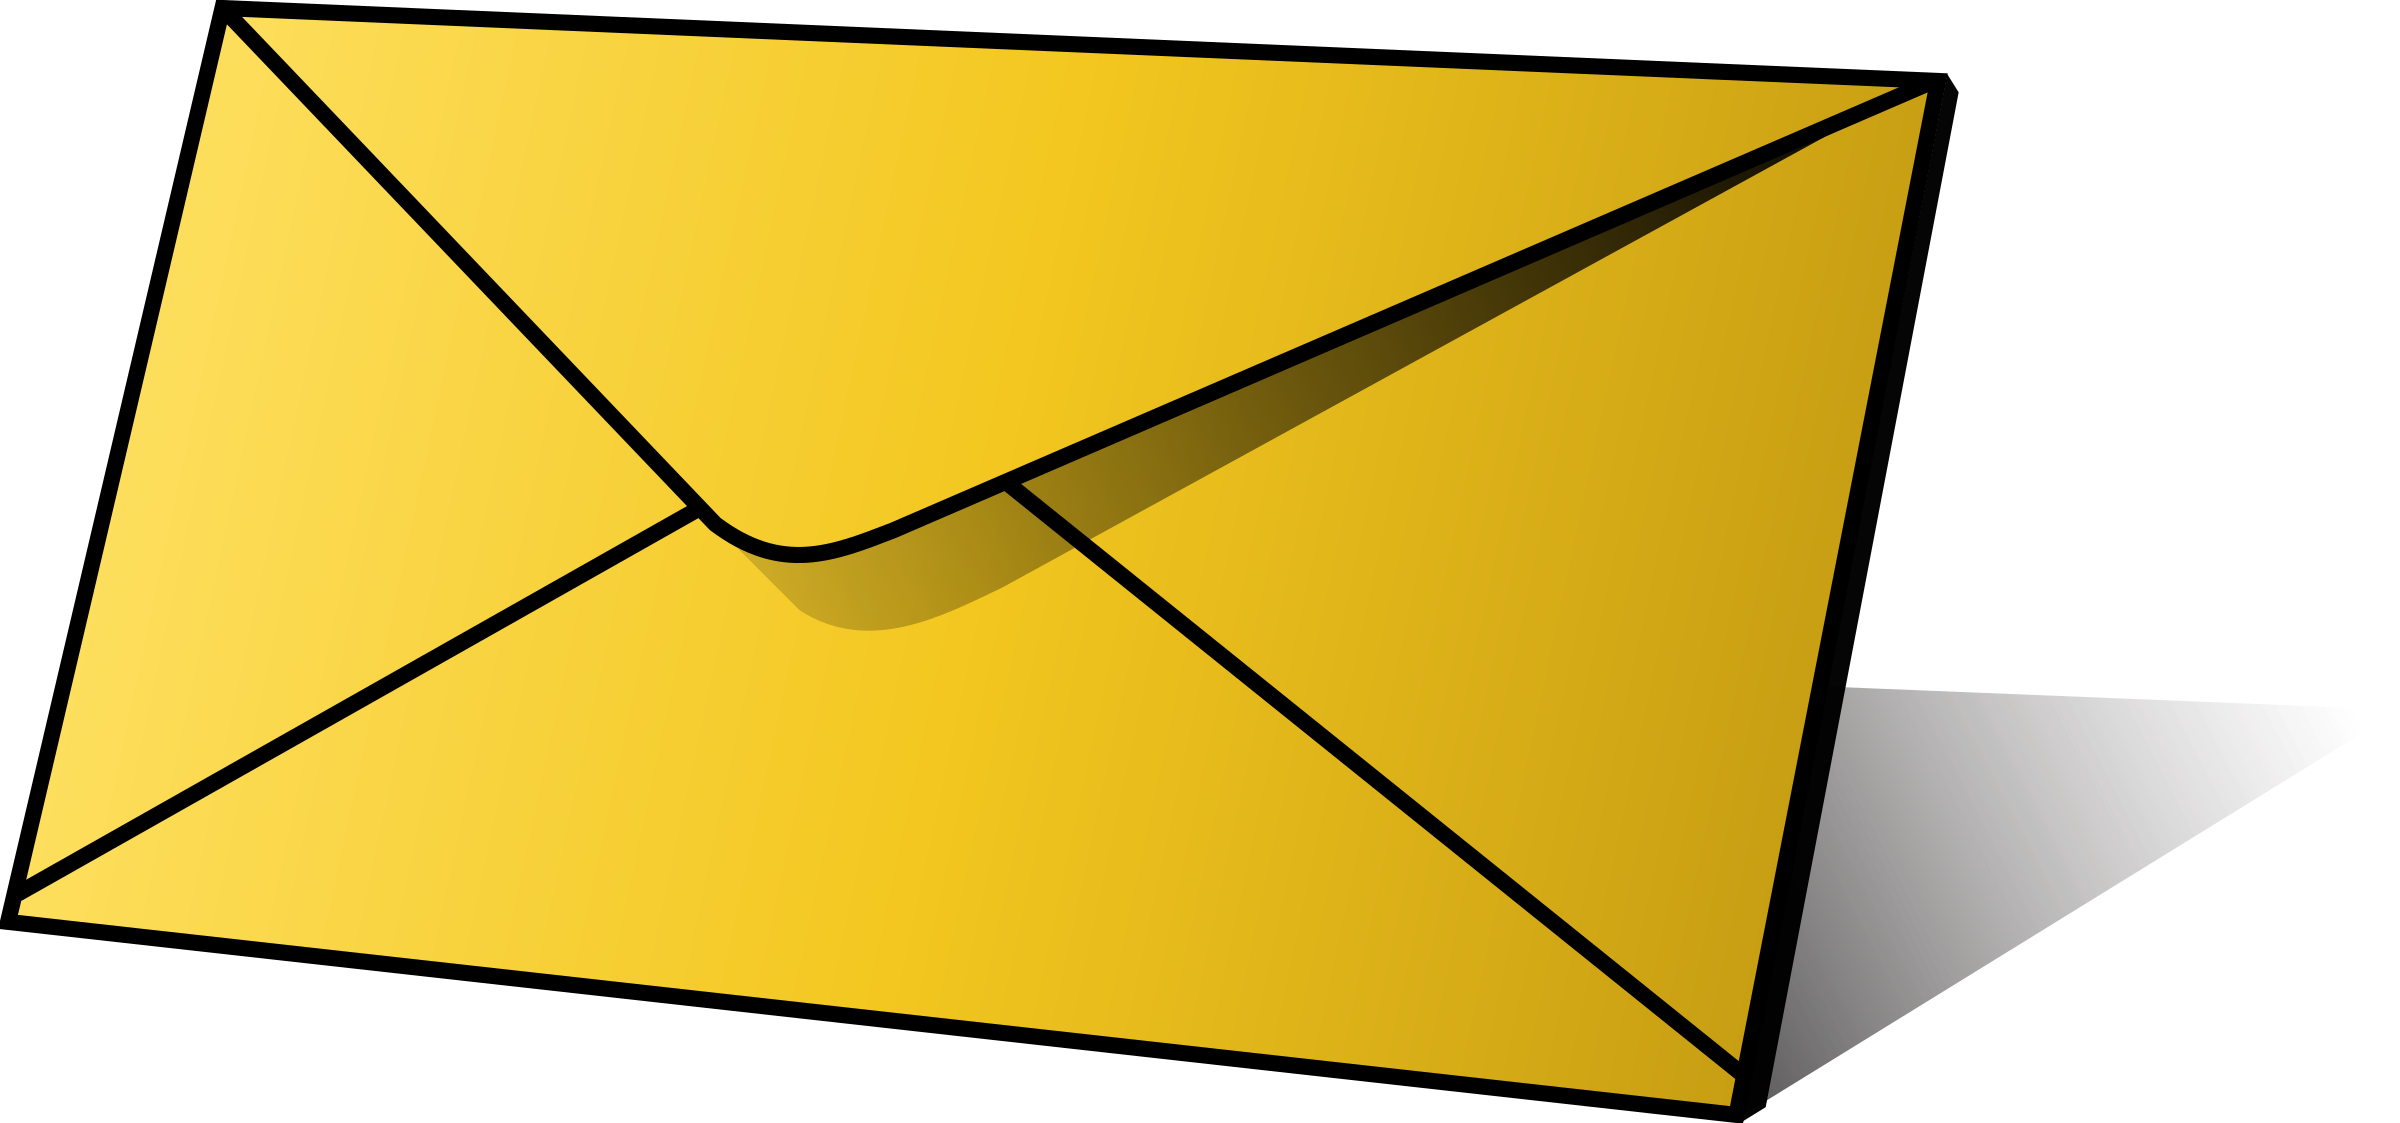 Mail clipart letter. Big image png